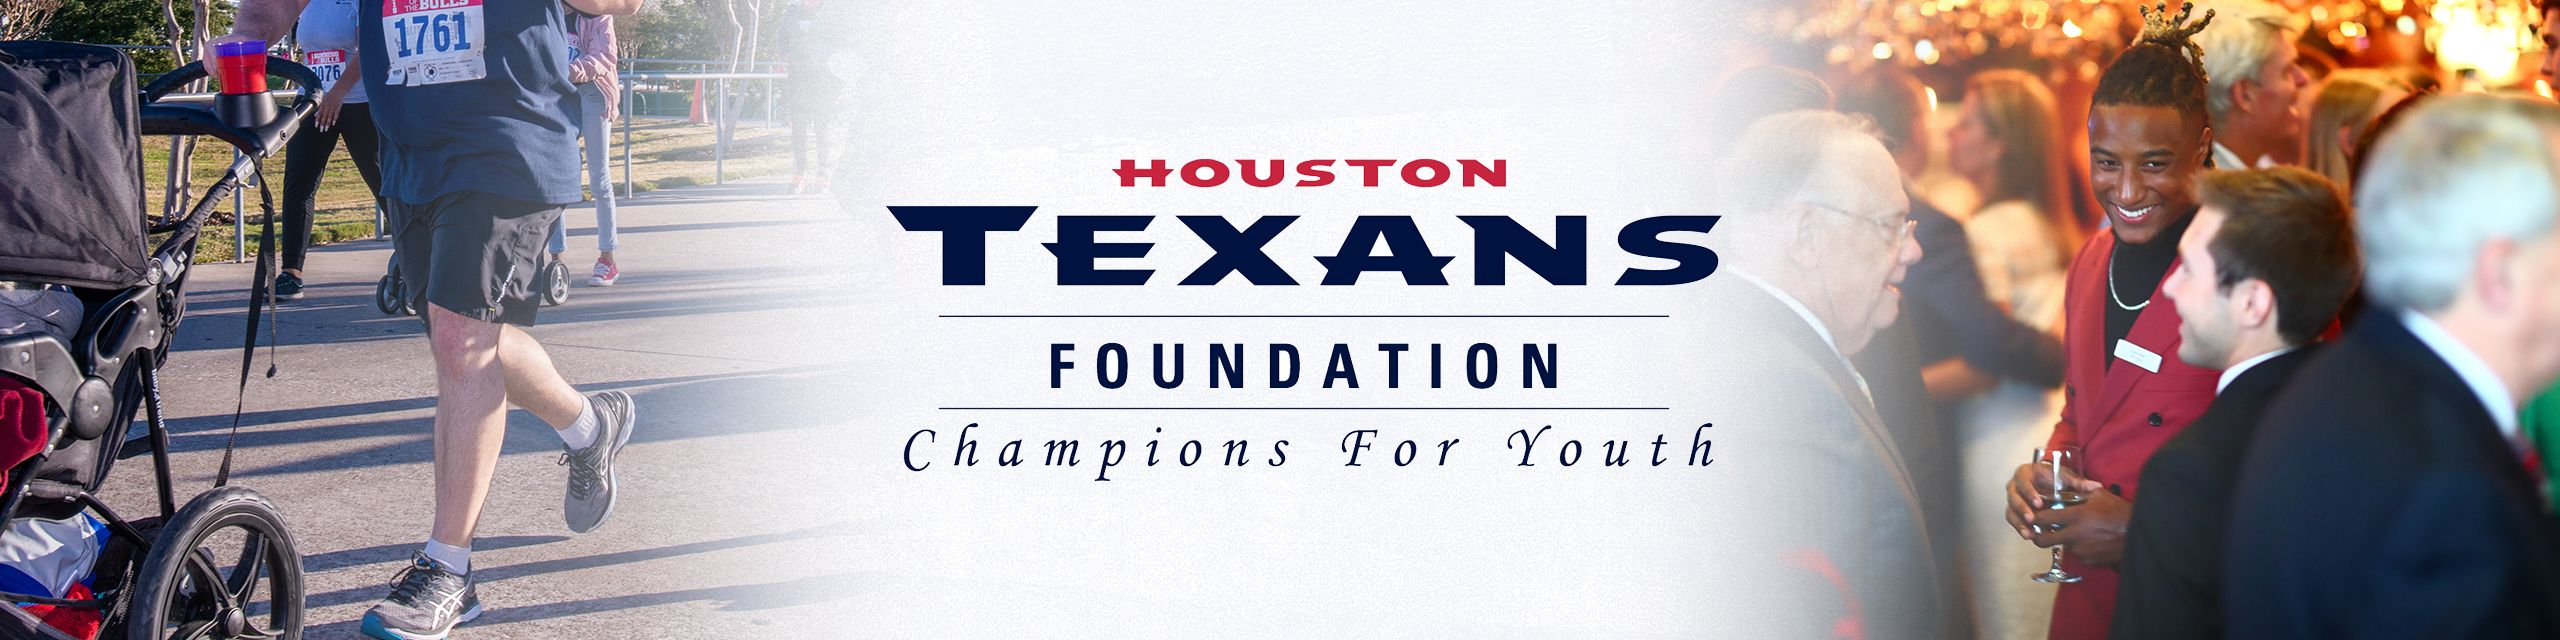 Houston Texans Foundation. Champions for Youth